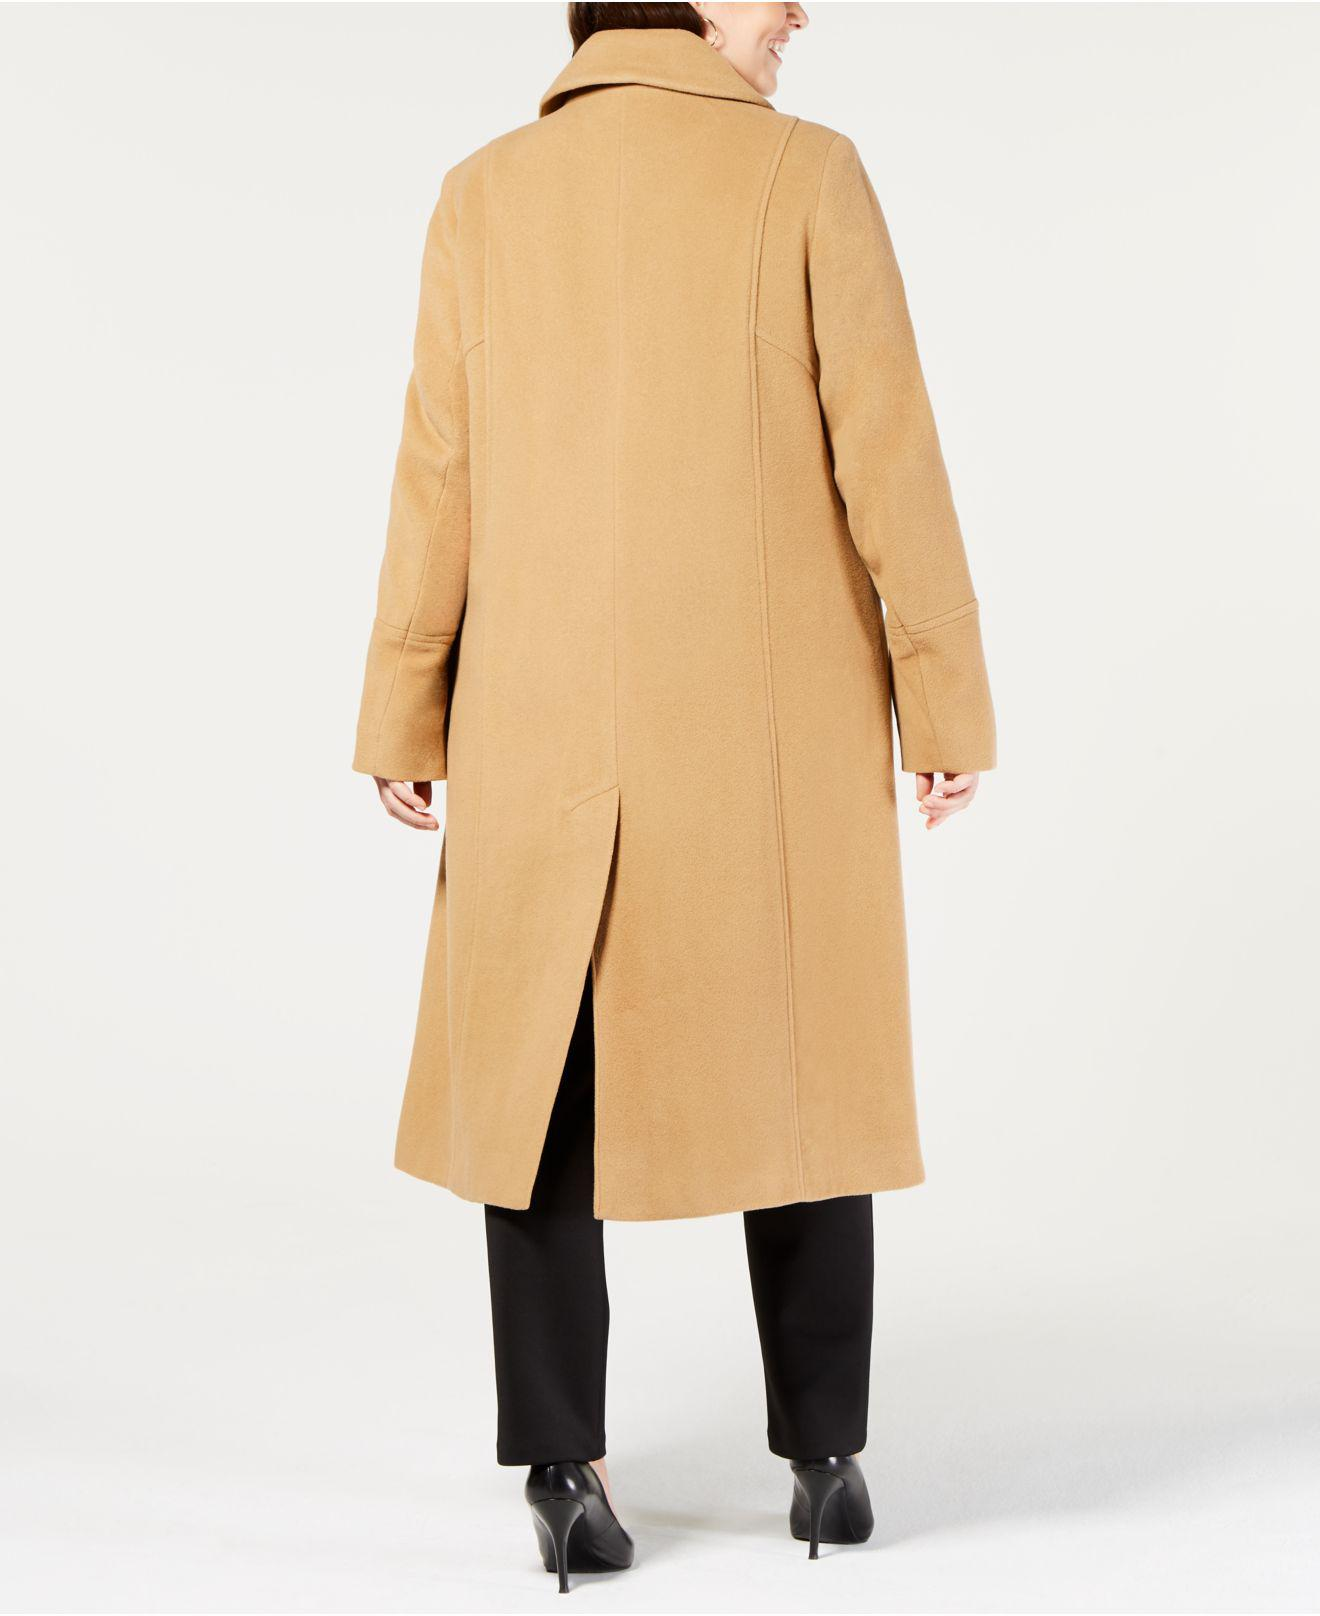 841b1c52b34 Lyst - Anne Klein Plus Size Single-breasted Coat in Natural